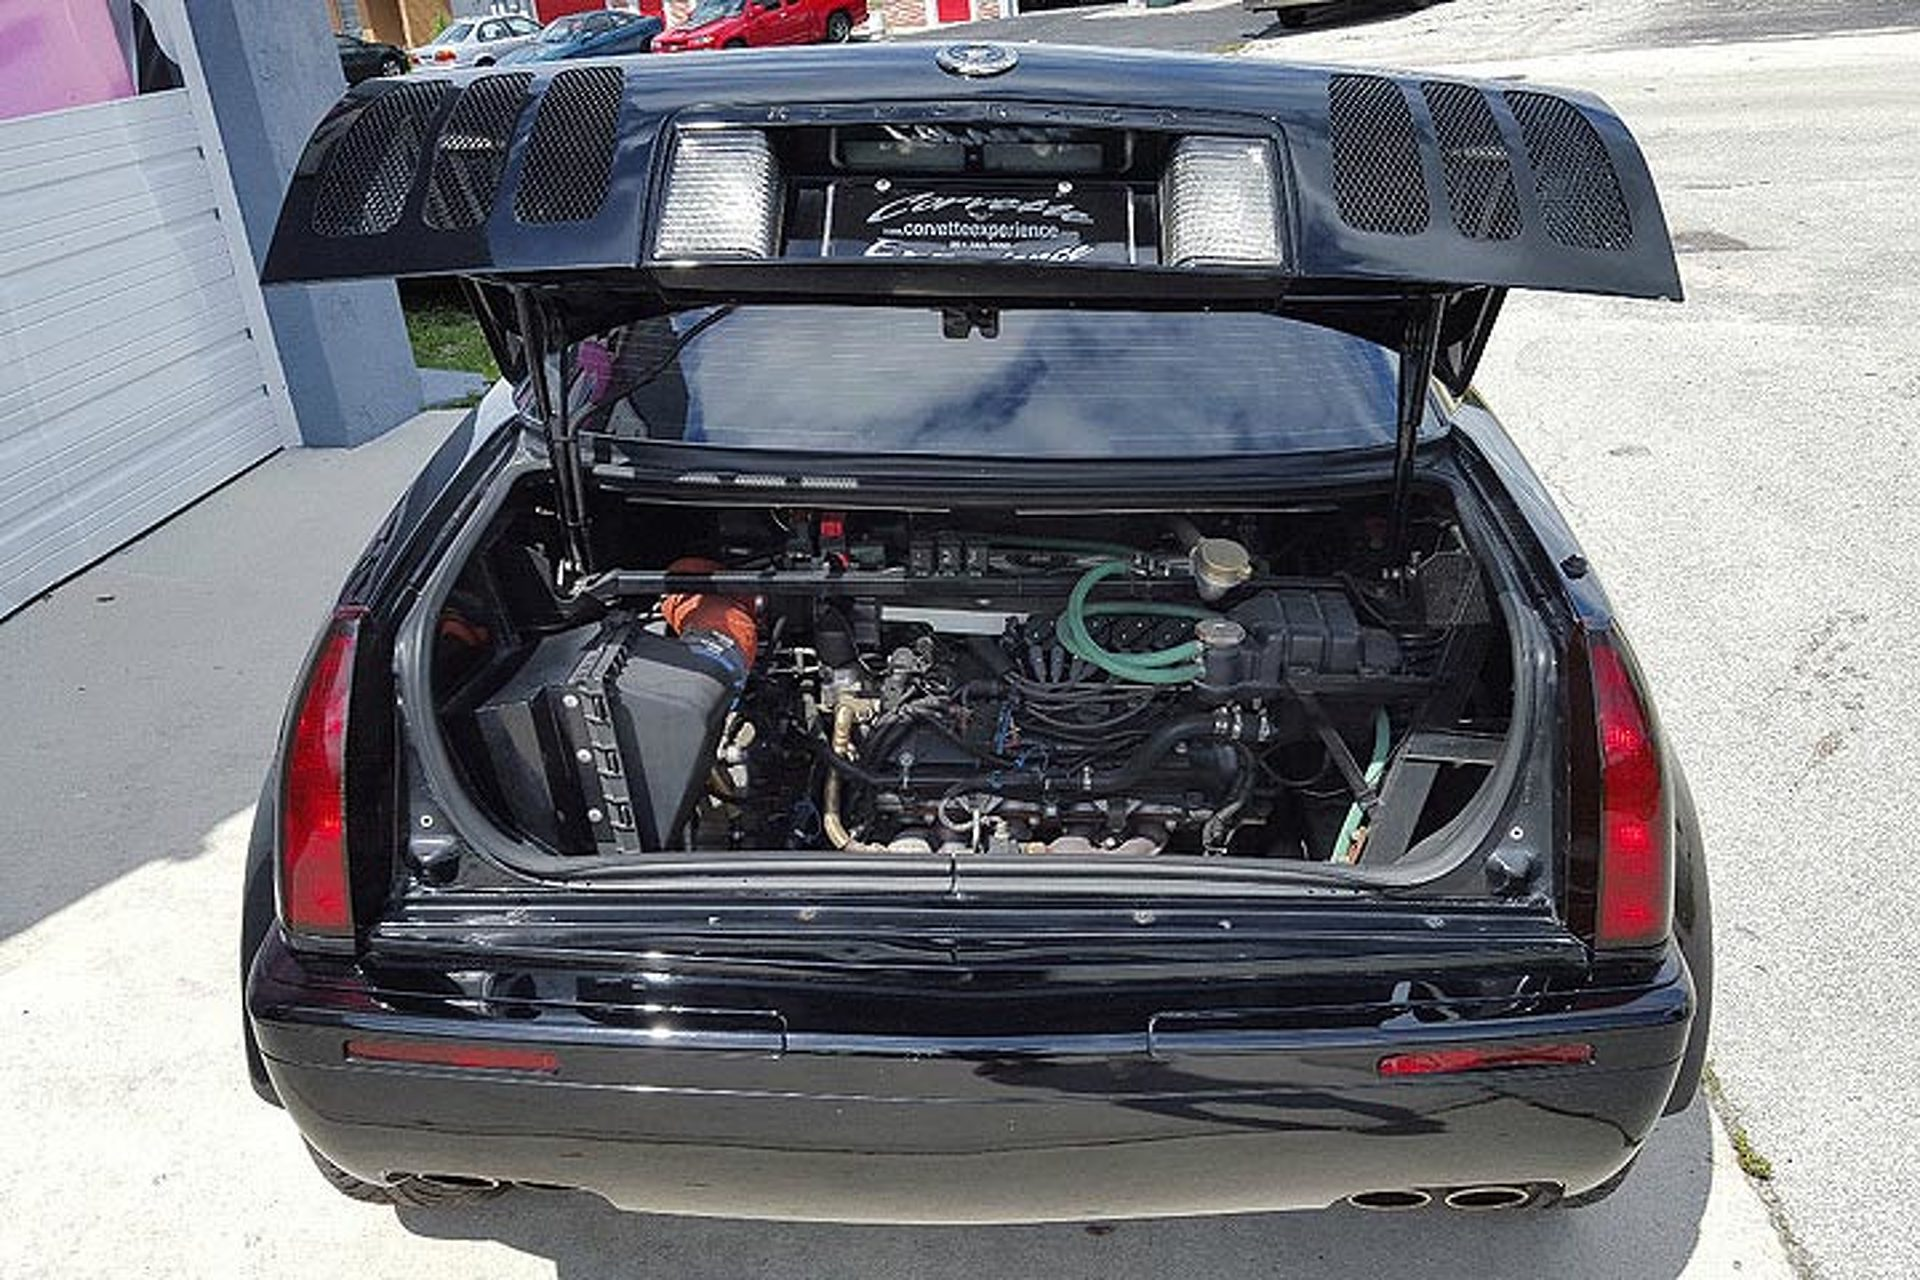 This 575-HP, Double-V8 Cadillac is Wonderfully Nutty